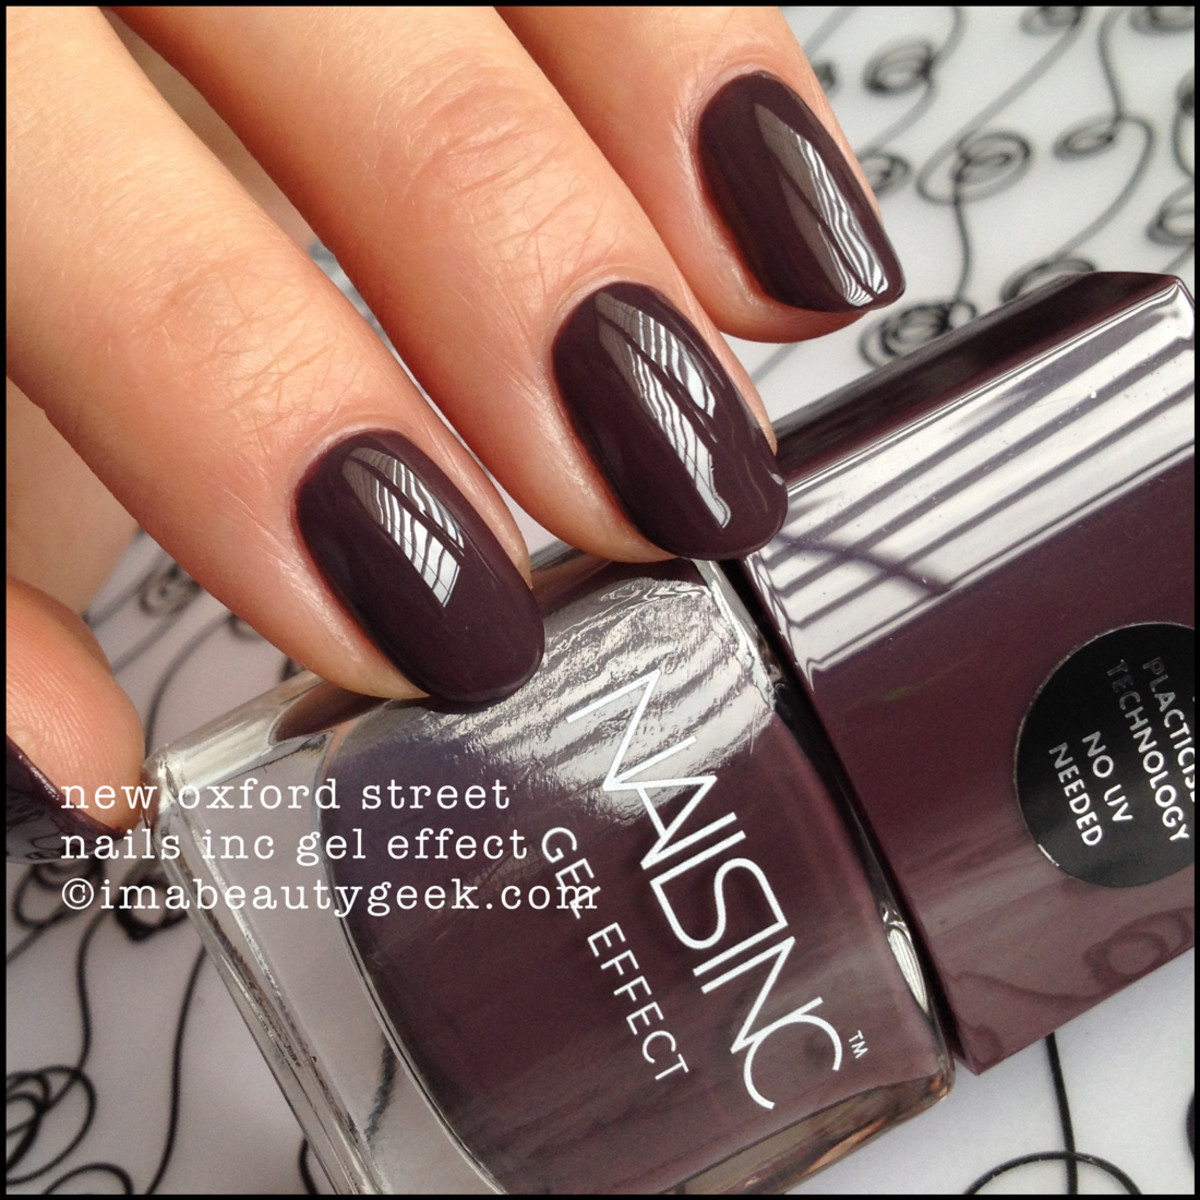 Nails Inc New Oxford Street Gel Effect Polish Manigeek Swatch